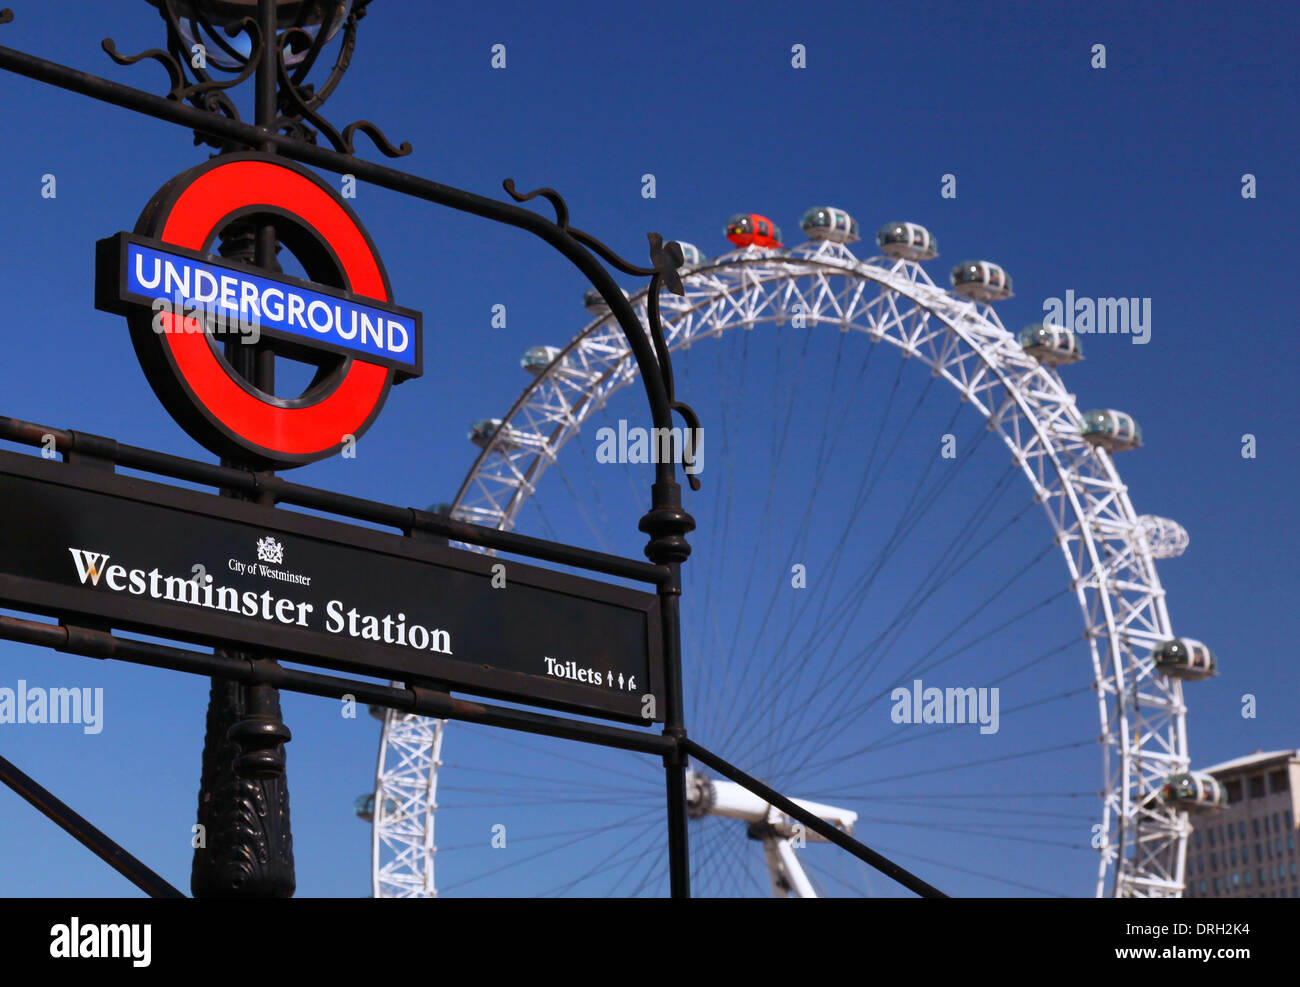 London Underground and the London Eye - Stock Image